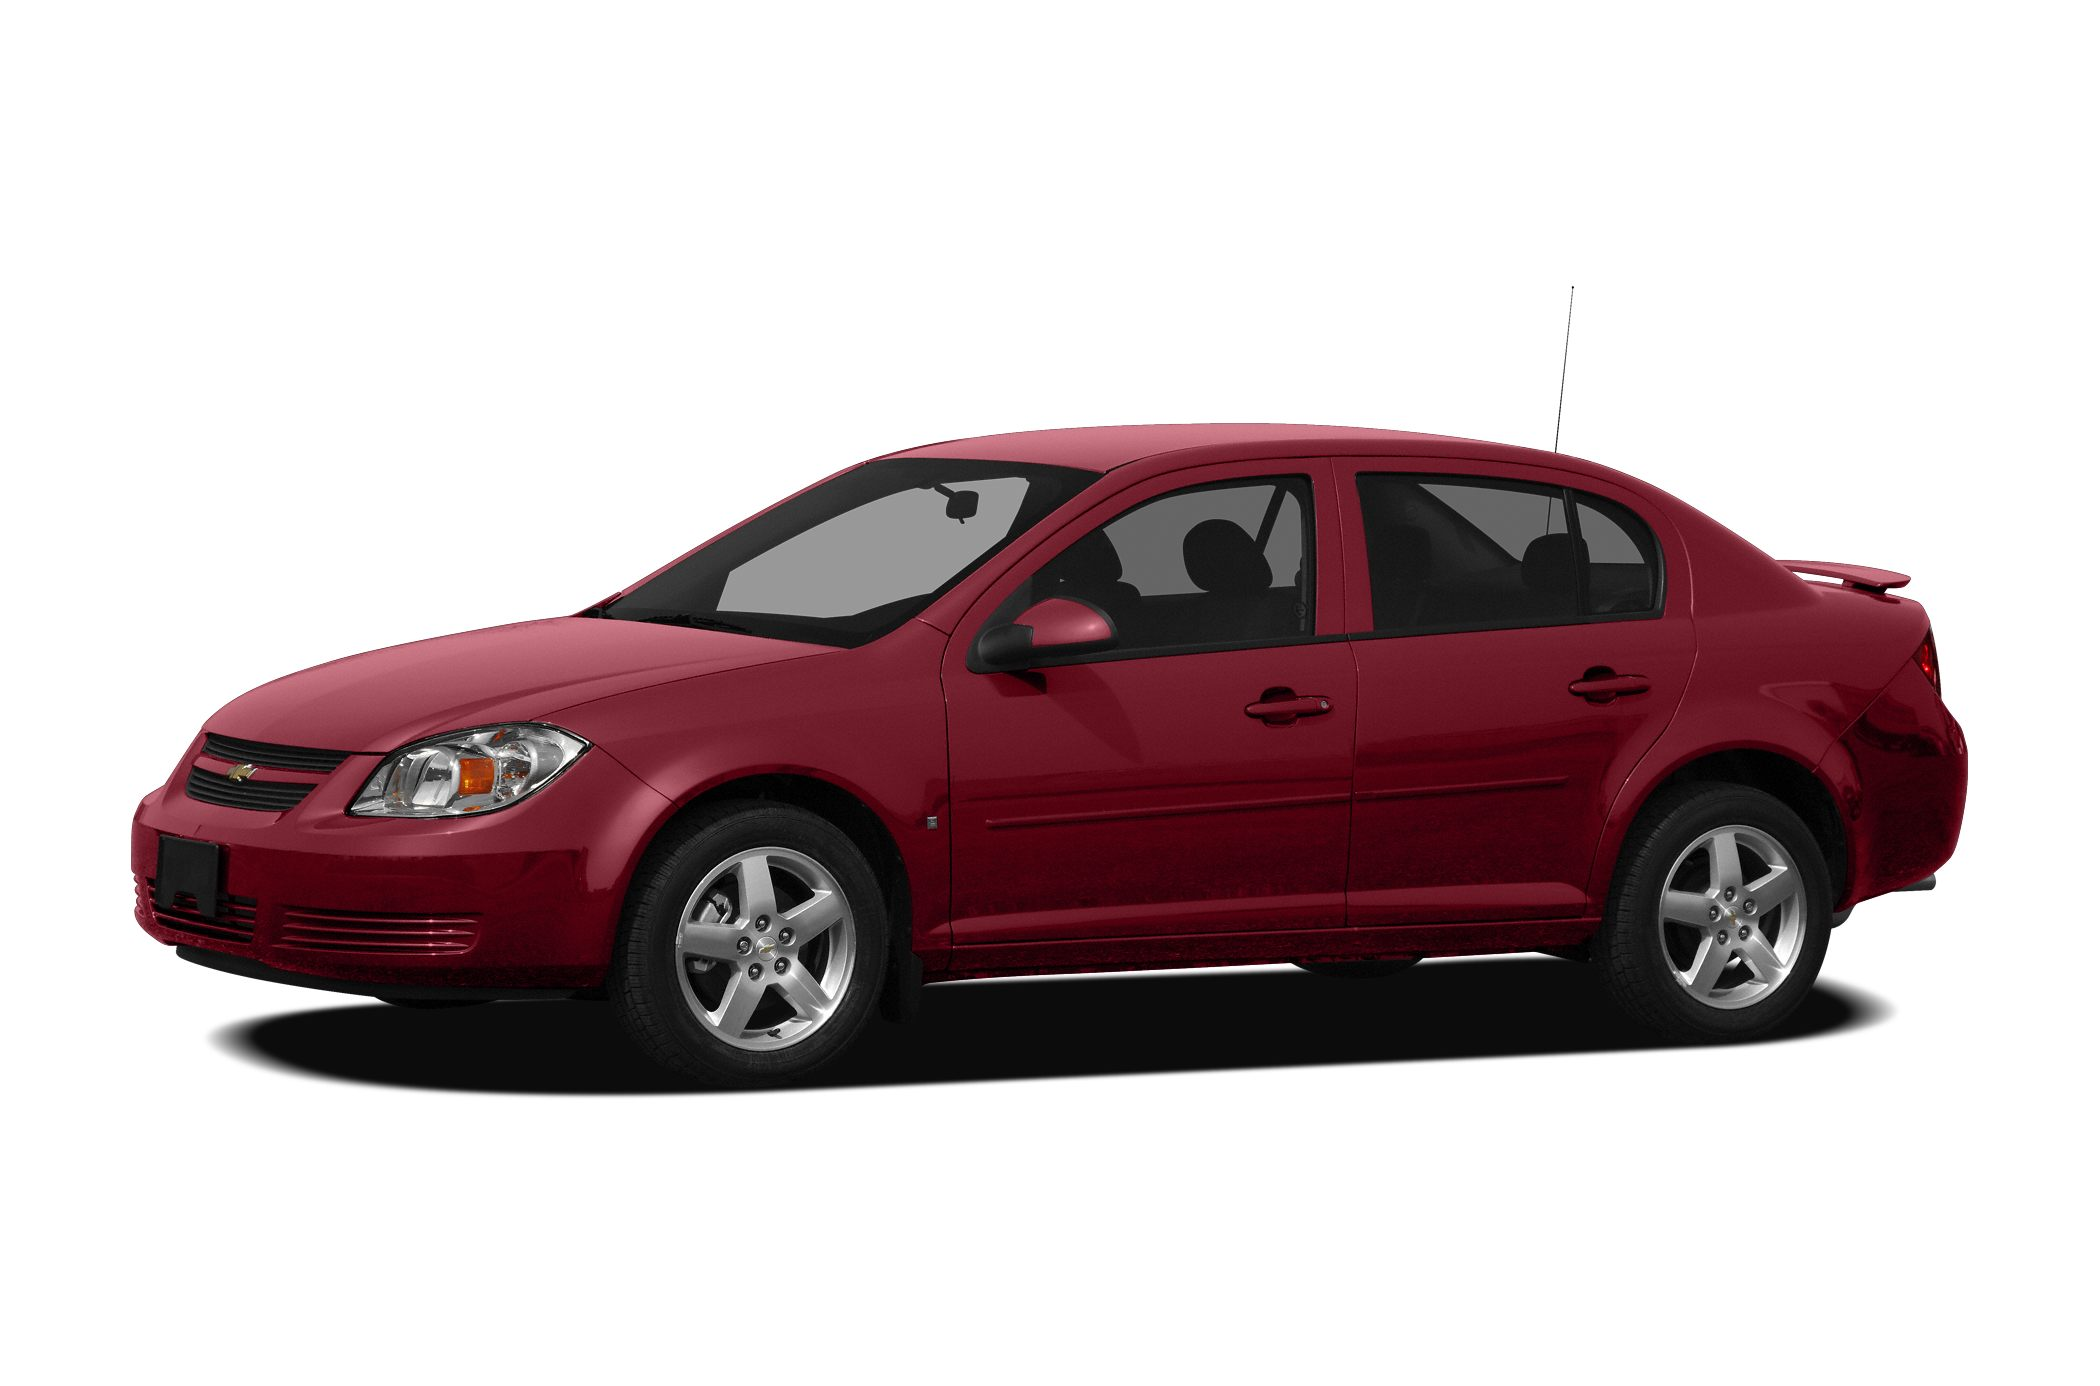 2010 Chevrolet Cobalt LT BUY DIRECT BUY BLUE BOOK ATTENTION SHOPPERS - This car is AutoCheck Ass